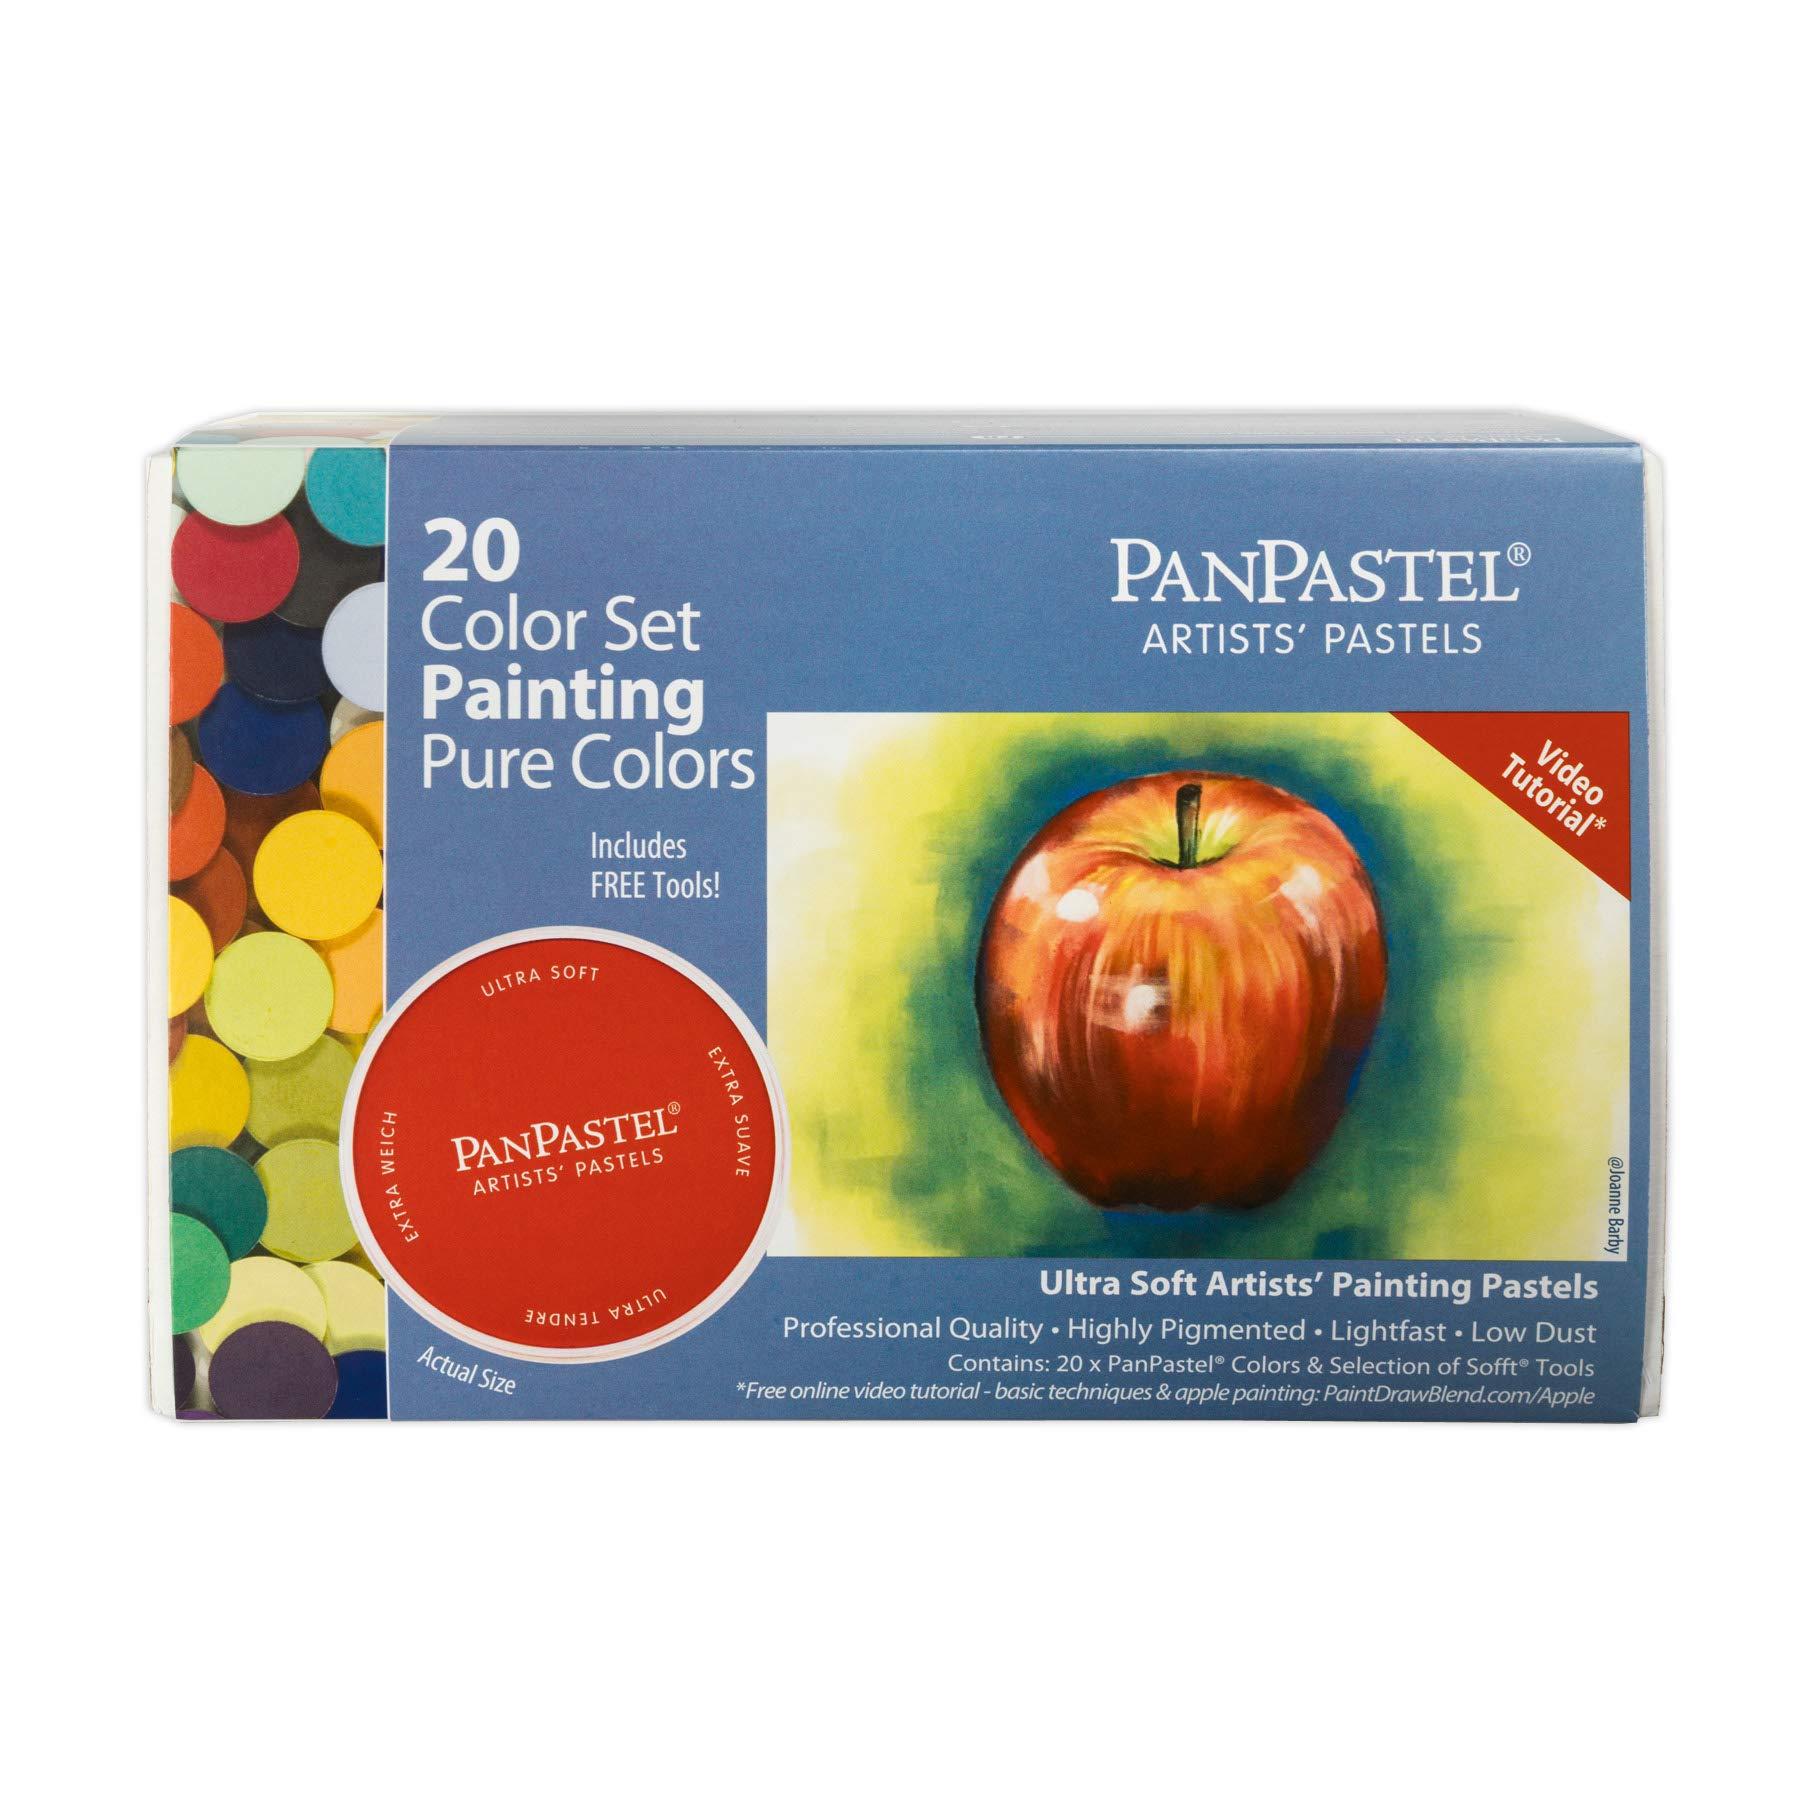 PanPastel 30201 Ultra Soft Artist Pastel 20 Color Set - Painting/Pure Colors w/Sofft Tools